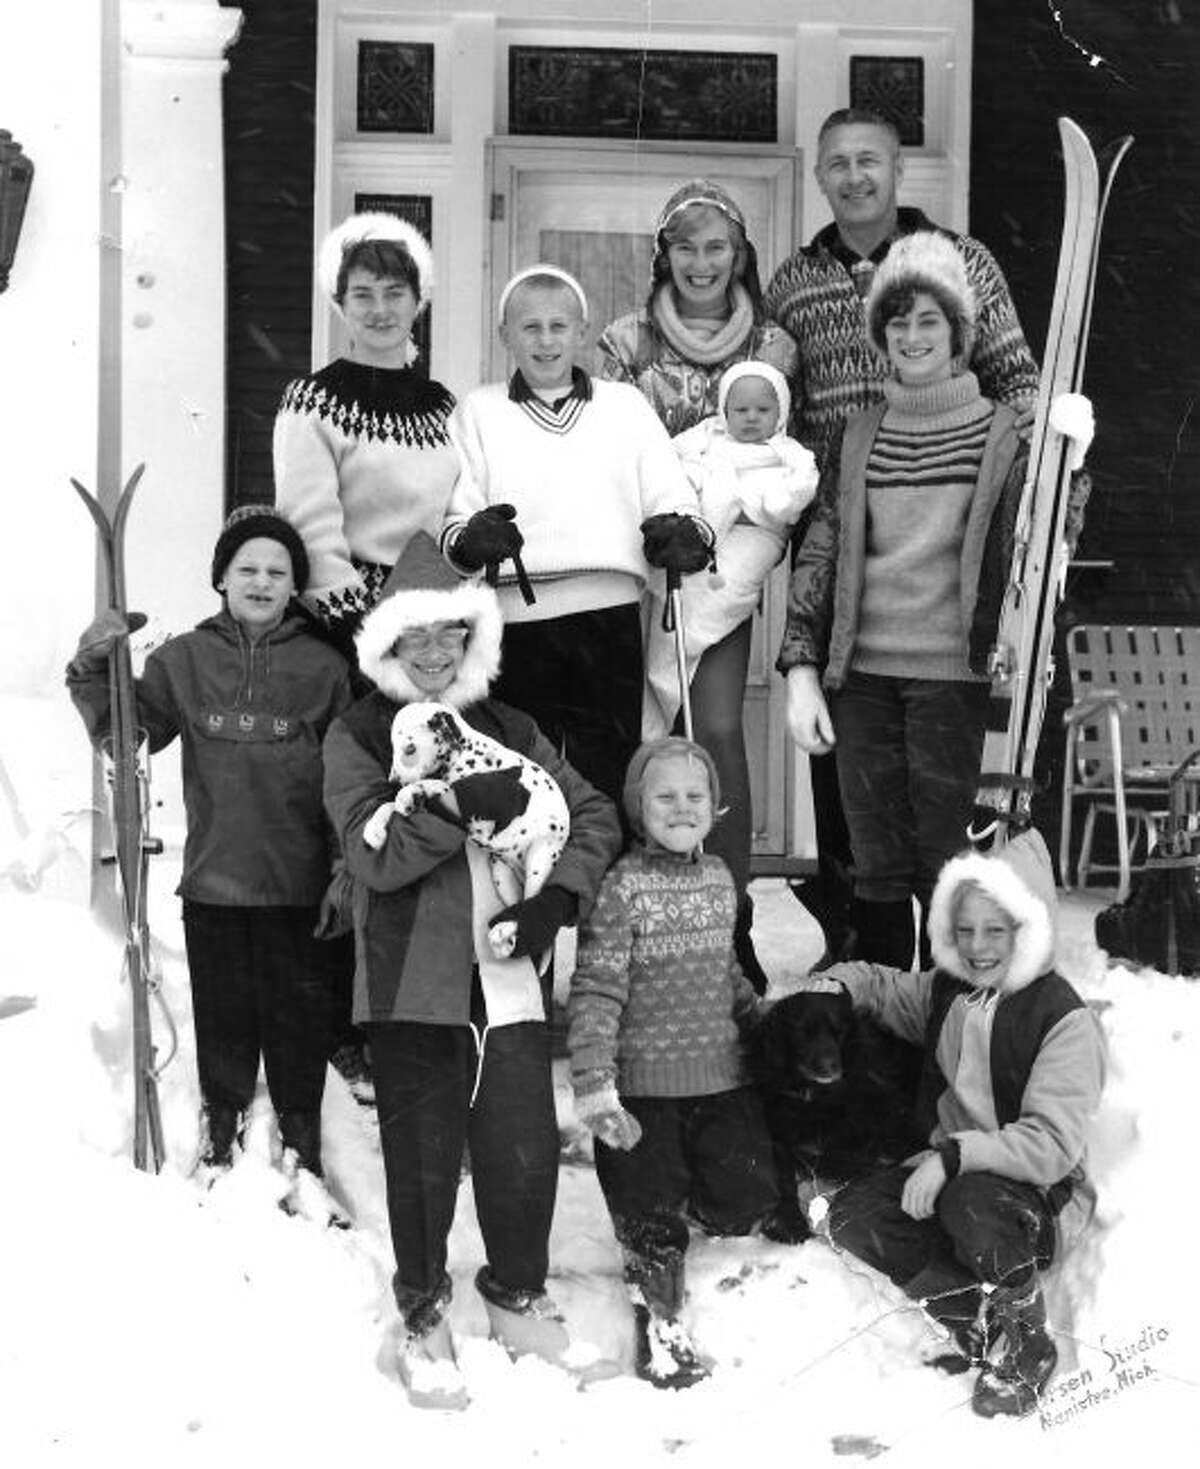 Members of the Bultema family pose for a photograph outside their home located at 427 Fifth Street. This week, members of the family have converged in Manistee to participate in a reunion.